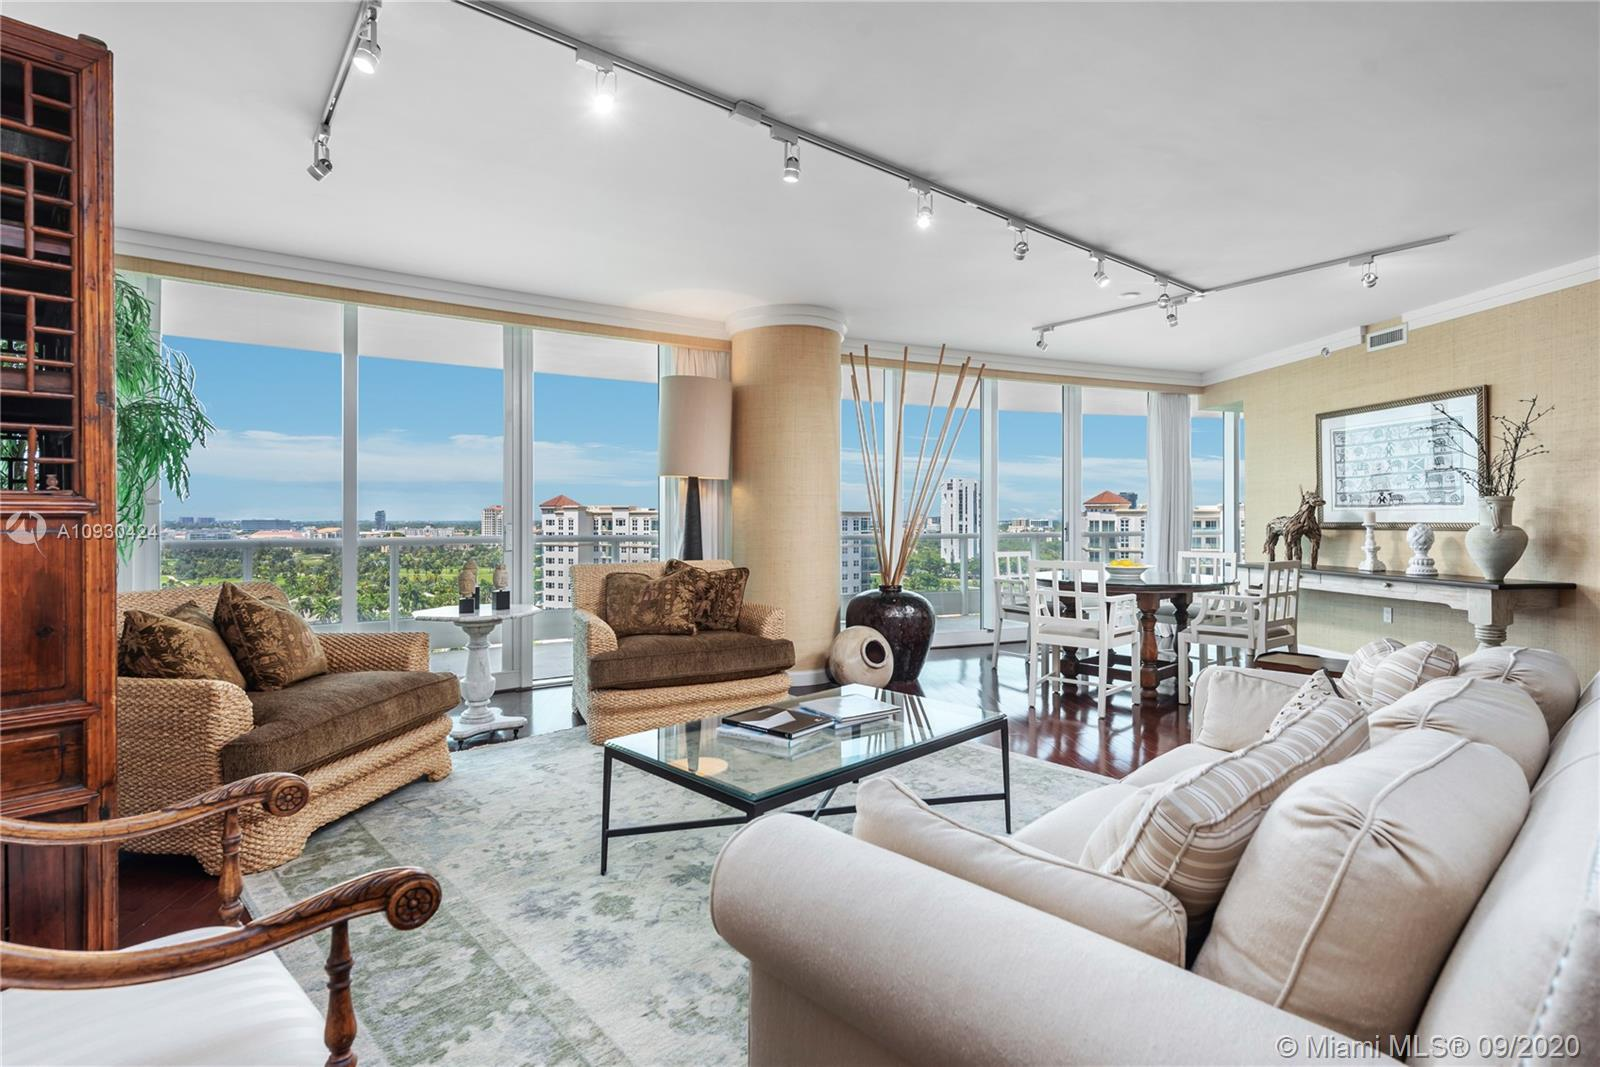 Beautifully designed furnished 2 bedroom, 3 1/2 bath + den has a split floor plan and priced to sell